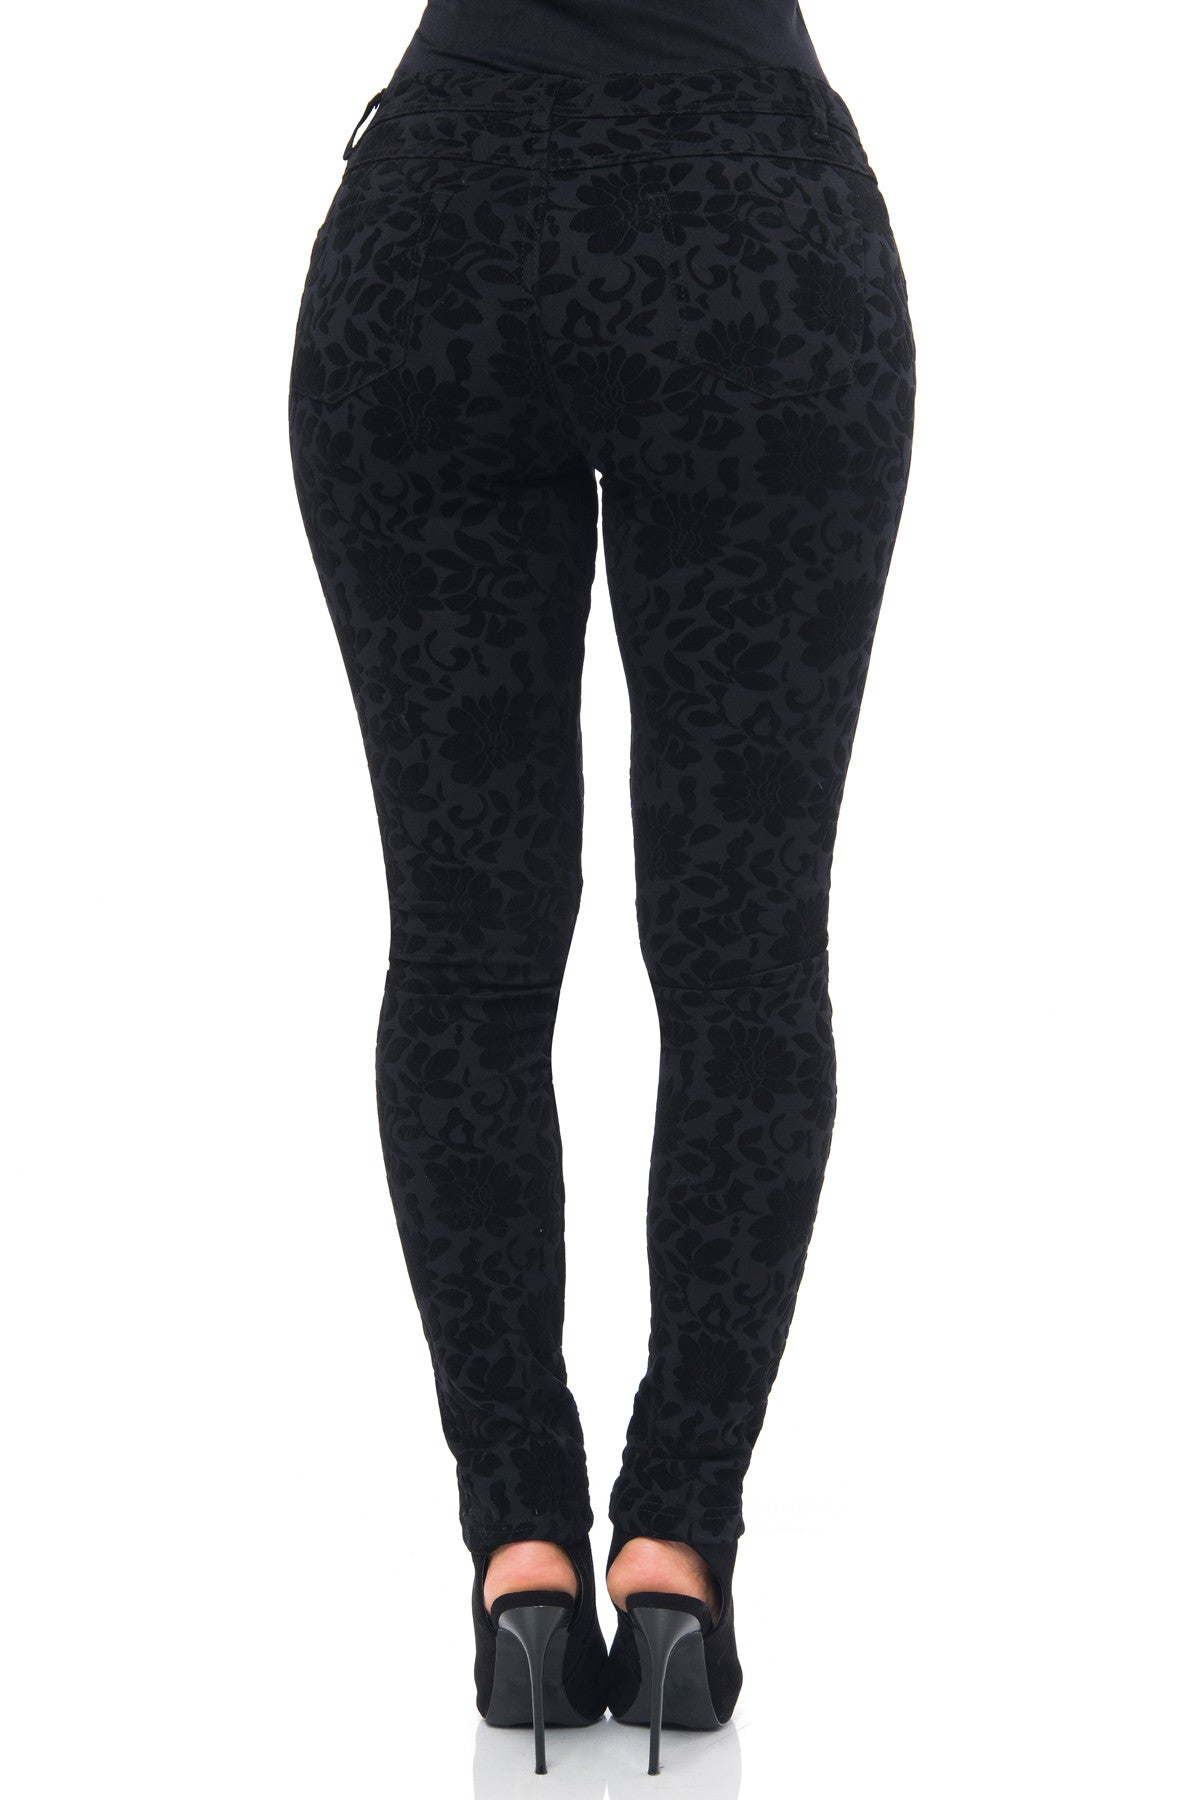 Fey Black Pants - Fashion Effect Store  - 3